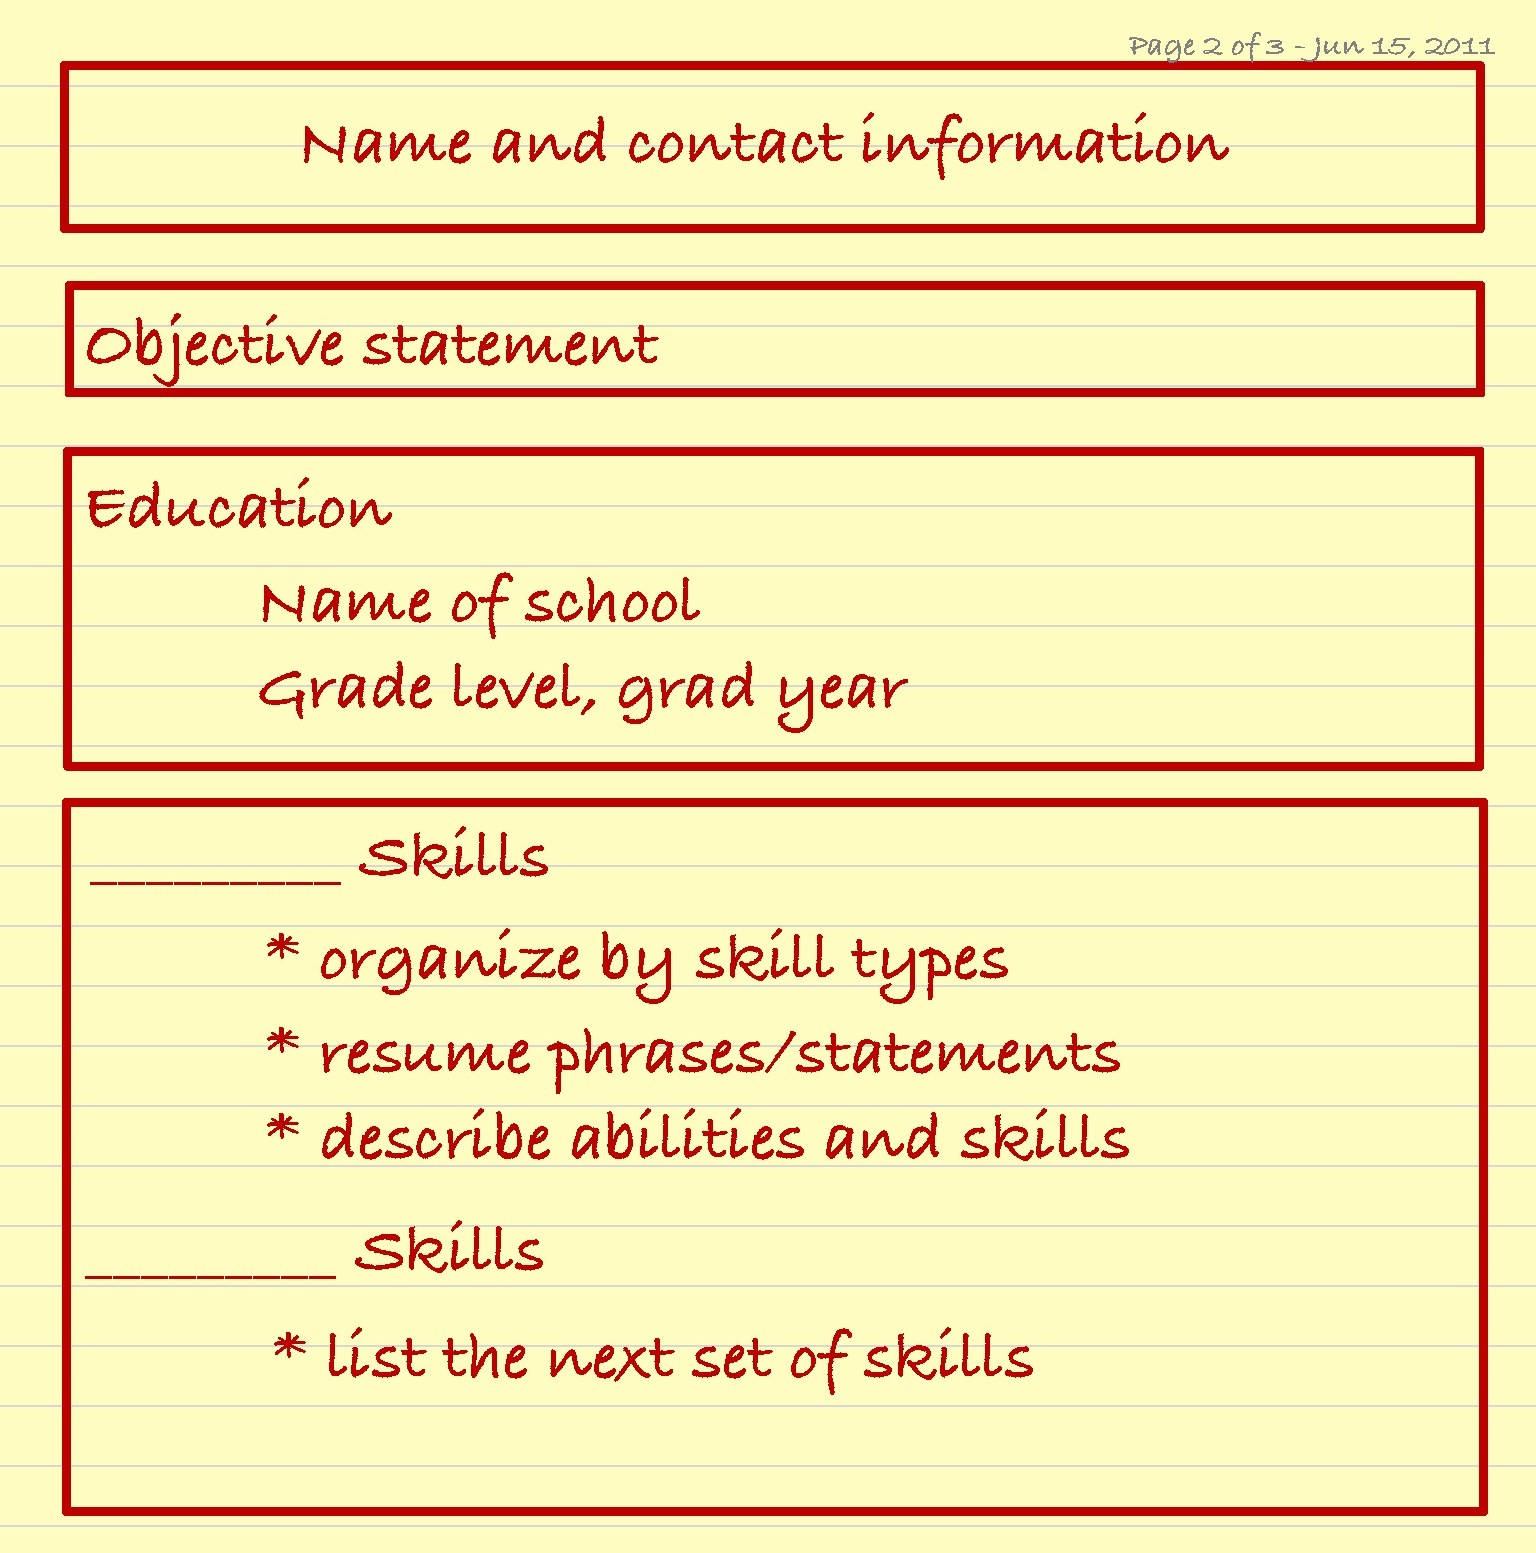 Resumes for High School Students – Sweet Careers Consulting